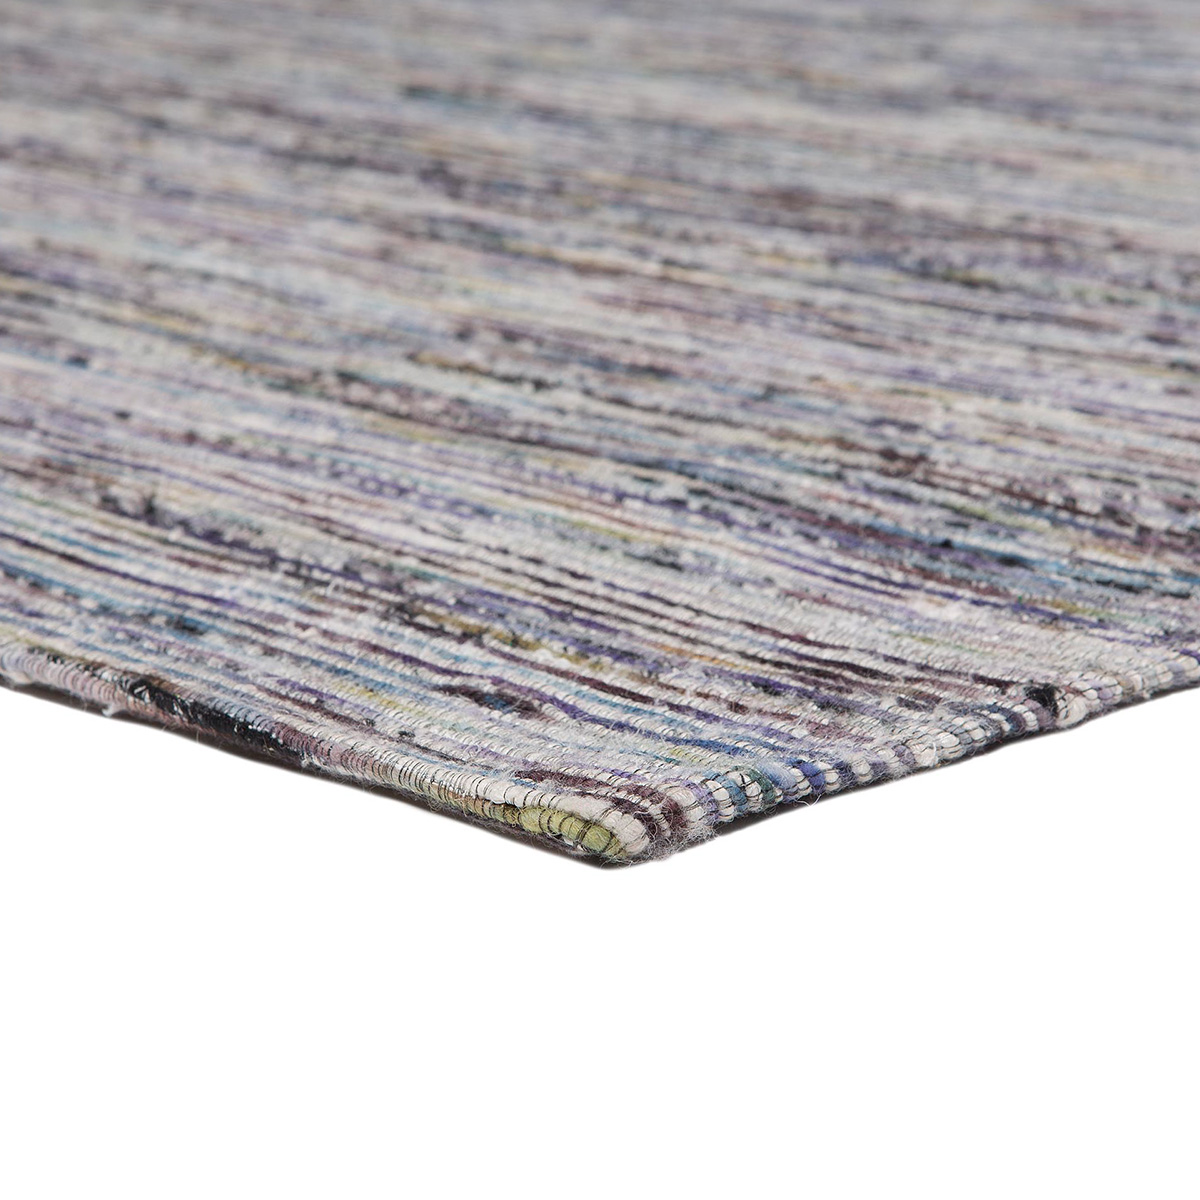 Vloerkleed Brinker Crown Purple Multi | 160 x 230 cm